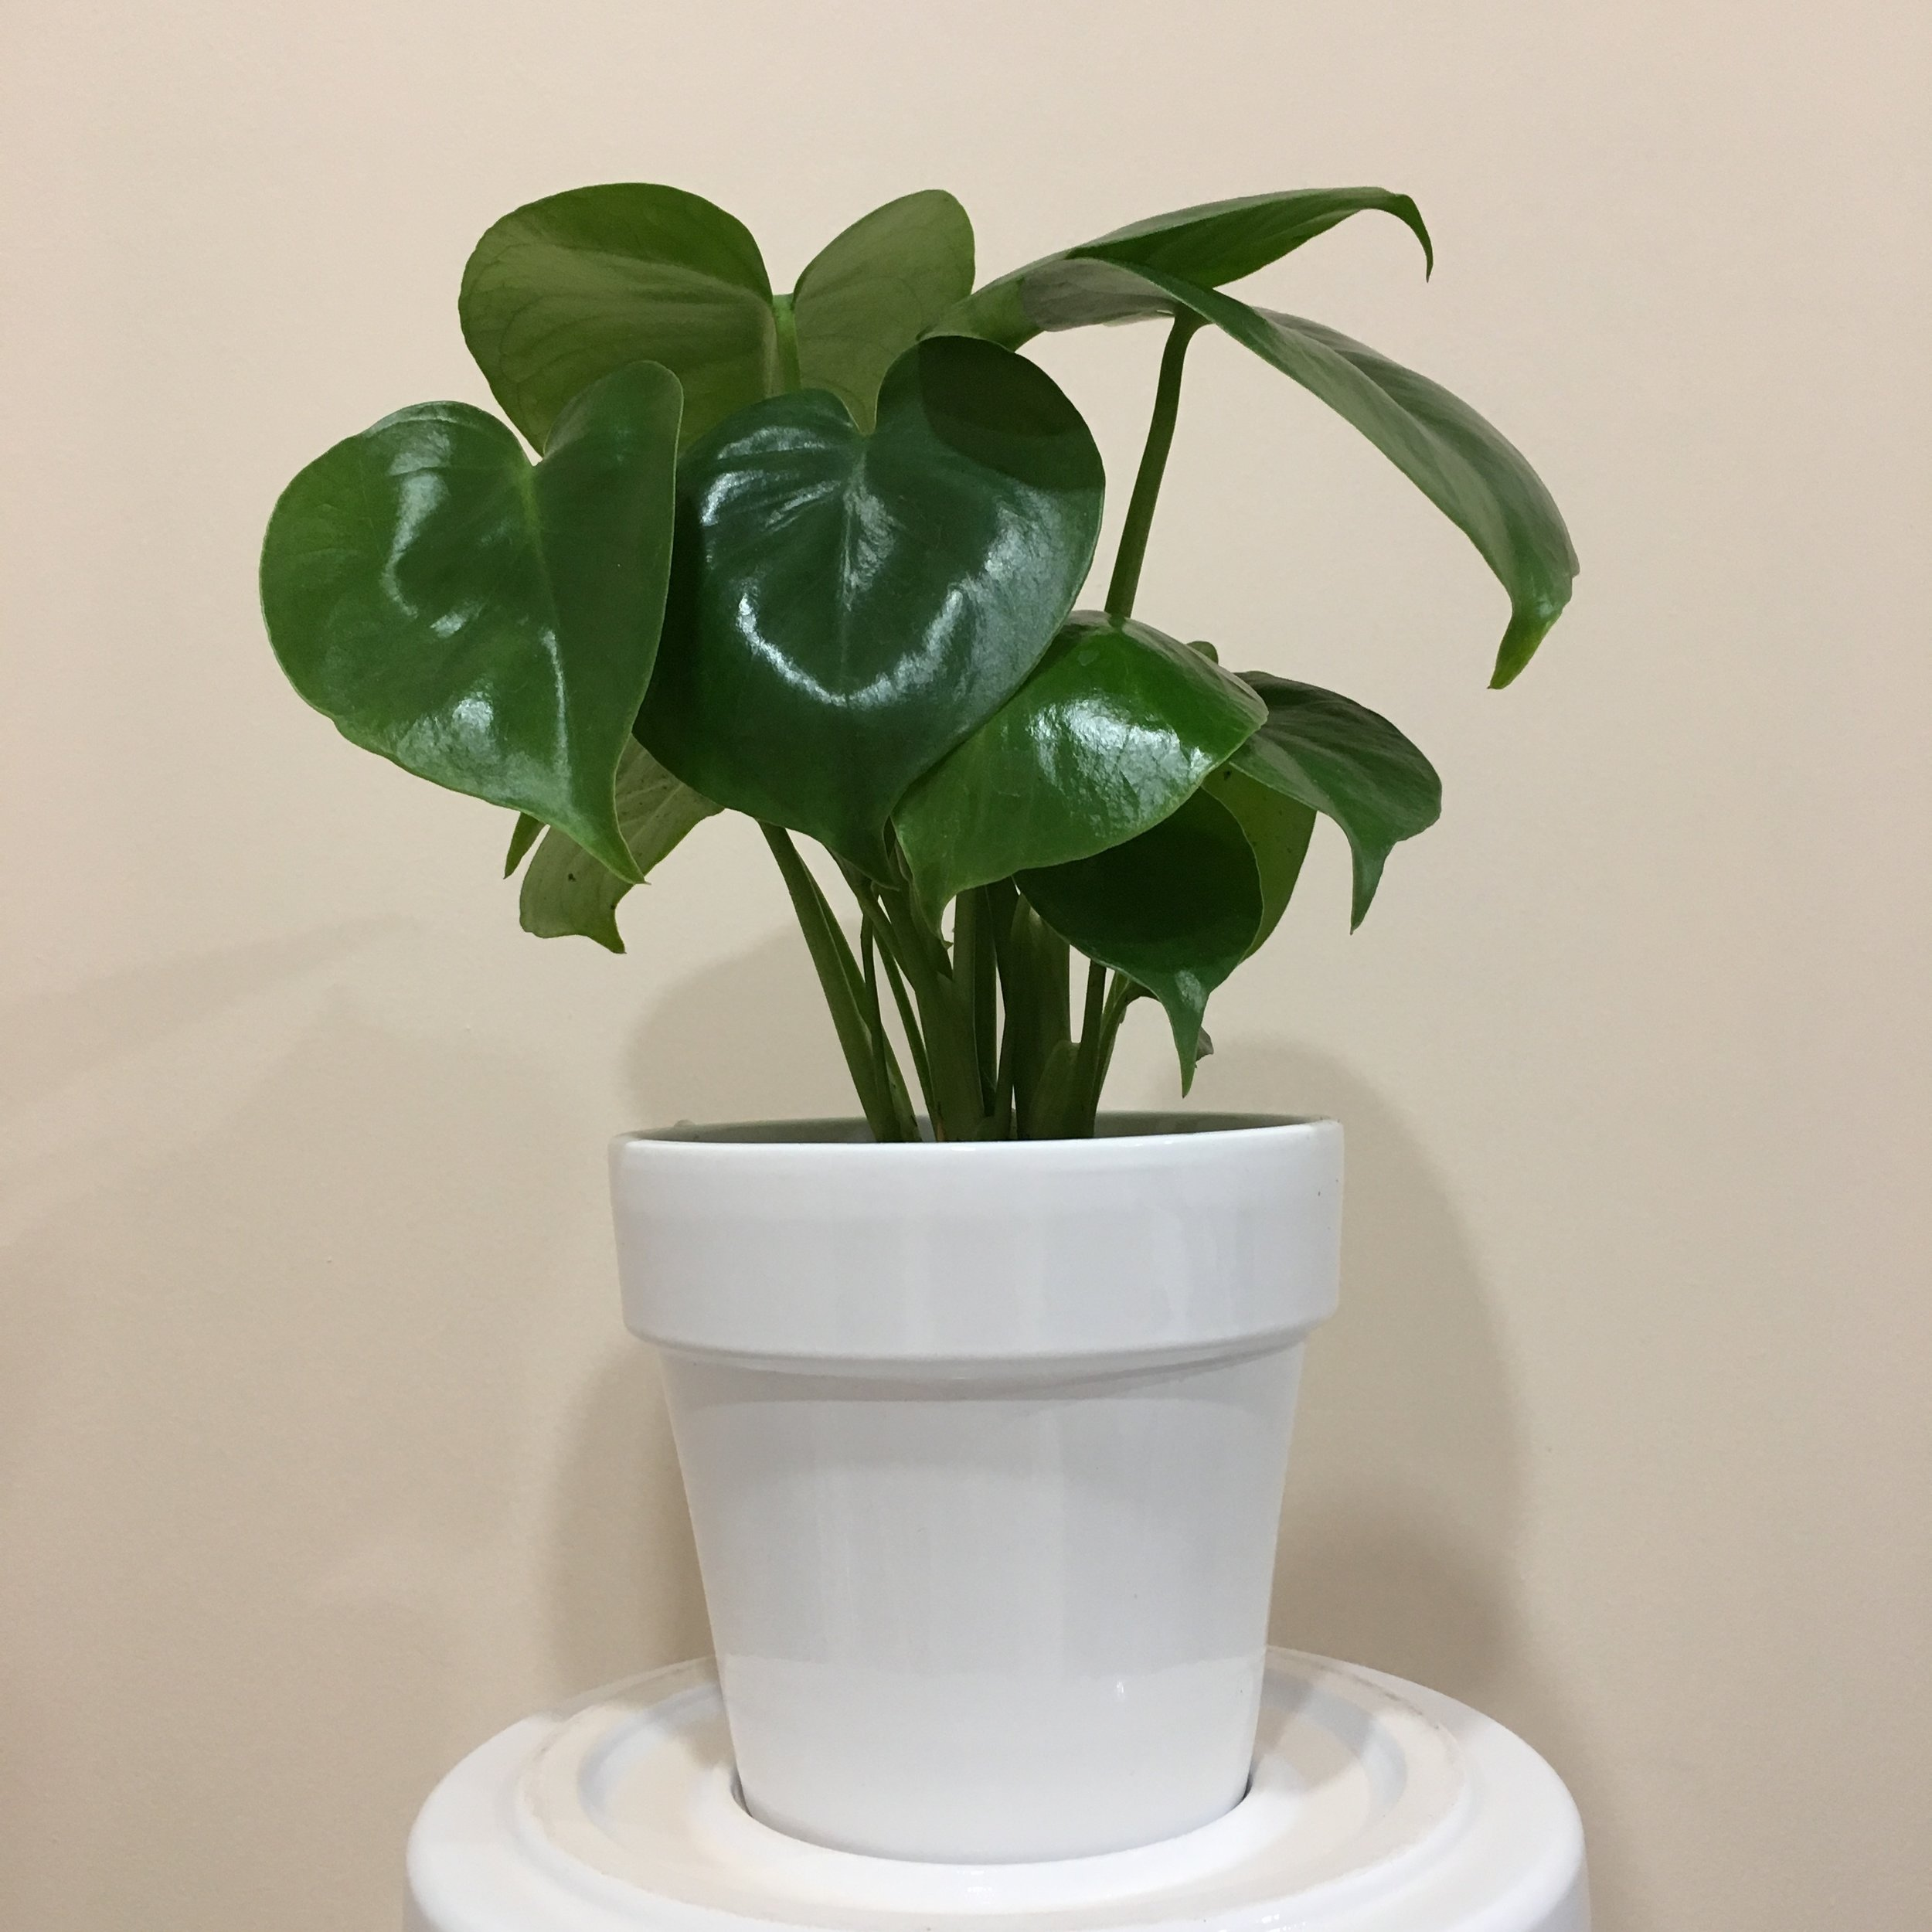 Philodendron Monstera - Light - Bright, indirect light.Water - The soil should be kept moist, allowing it to dry a bit in between watering. Watering can be done once a week to every ten days.Origin - Mexico, PanamaFun Fact - In the jungle, the plant climbs toward the light, crawling up other plants with aerial roots growing from the stem.